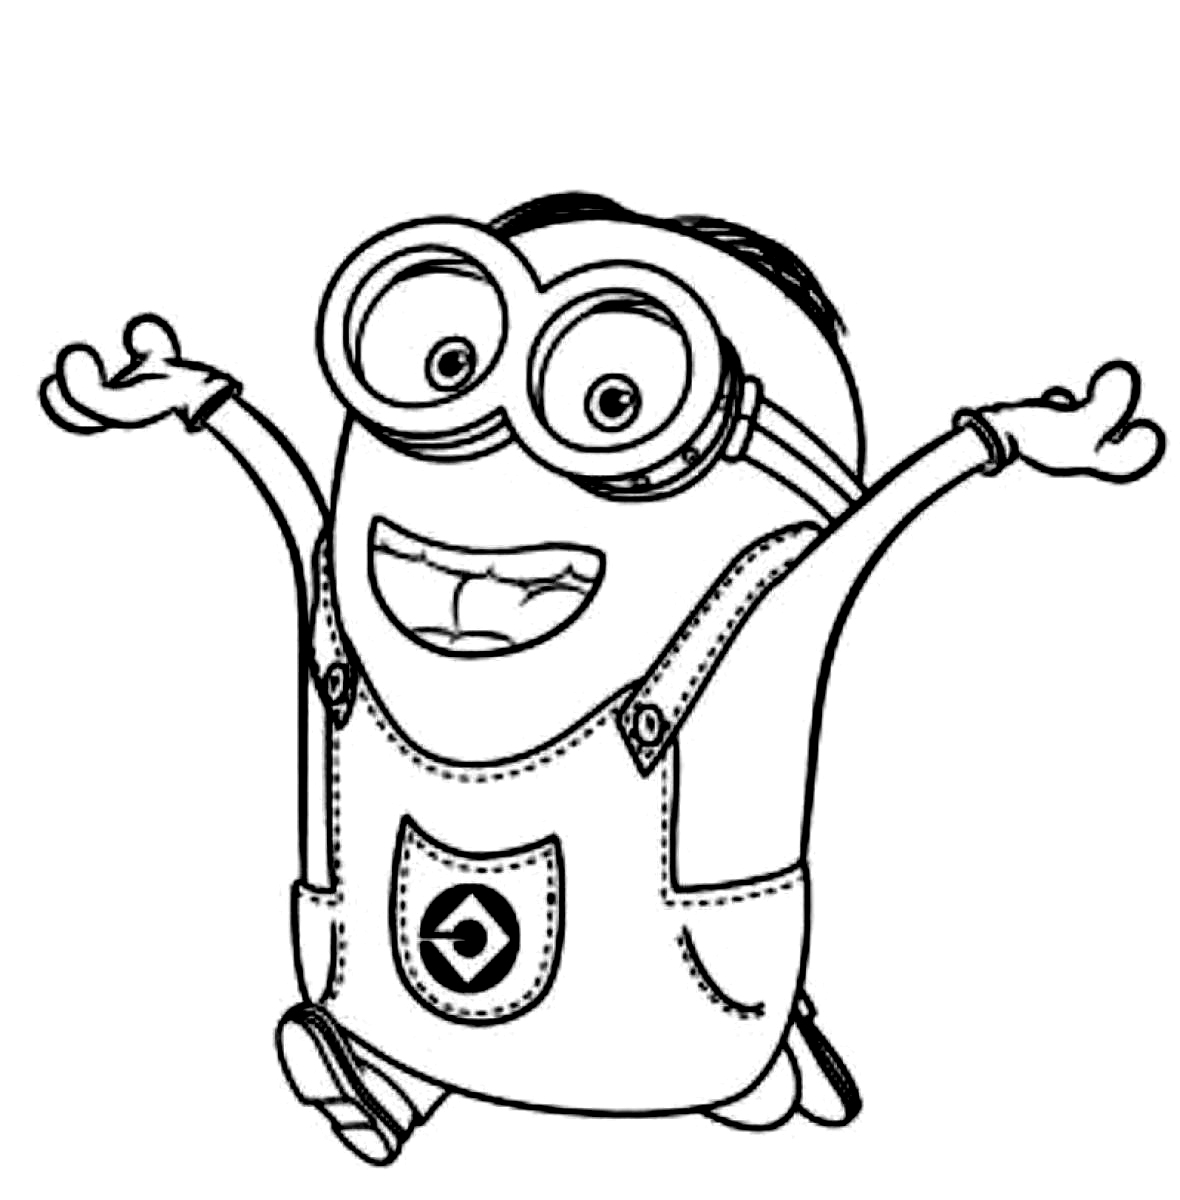 Free printable despicable me coloring pages for kids for Despicable me coloring pages printable